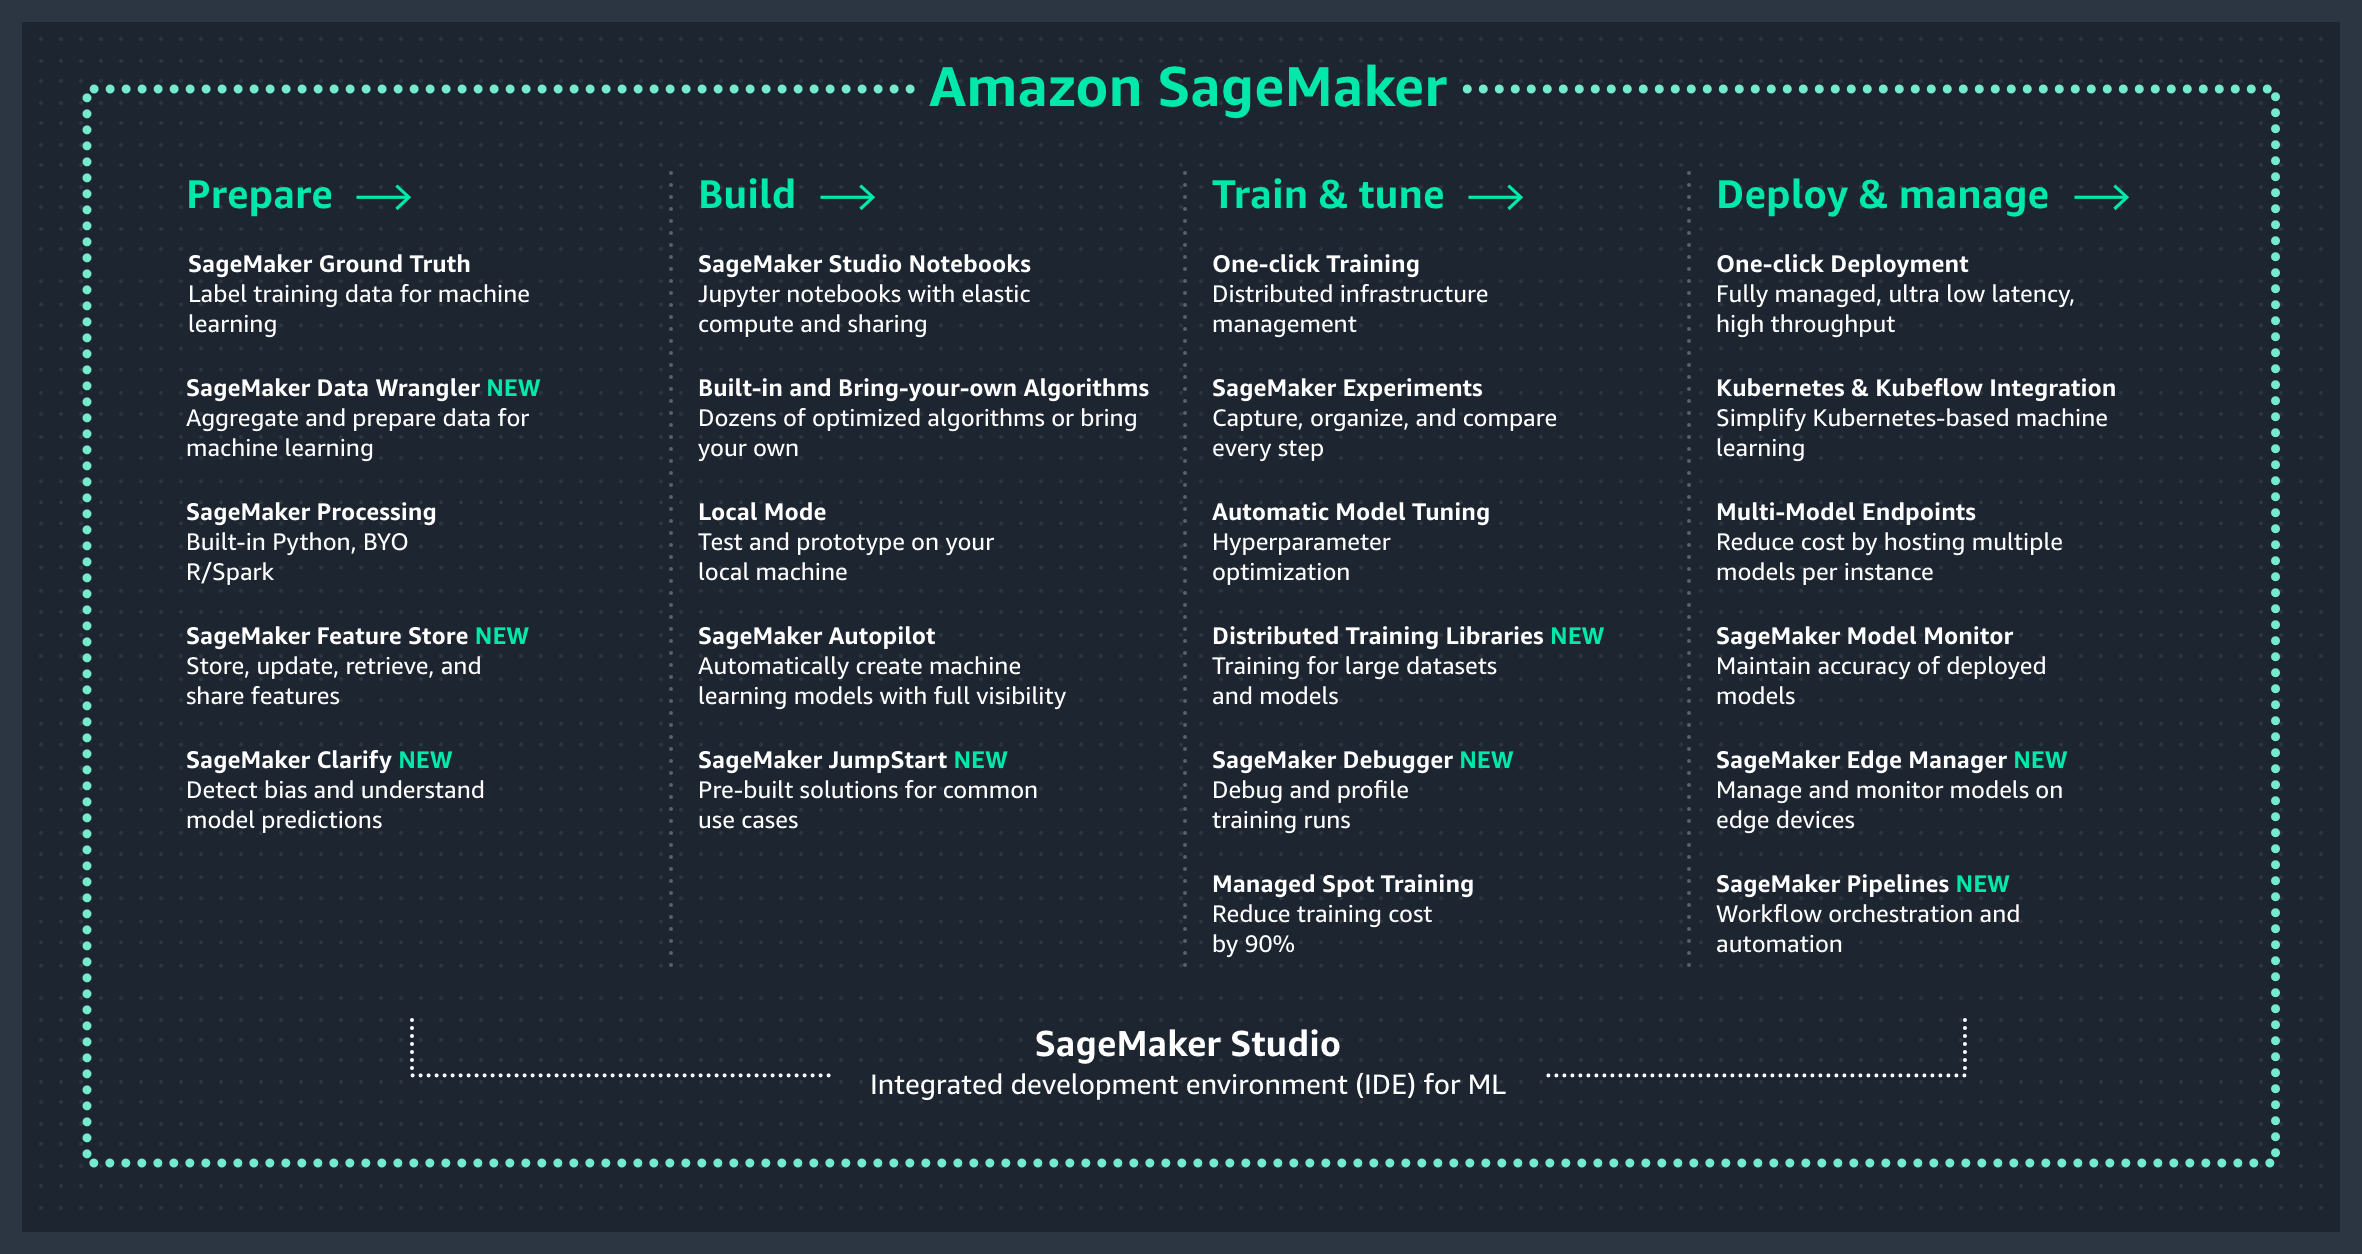 Ikhtisar Amazon SageMaker